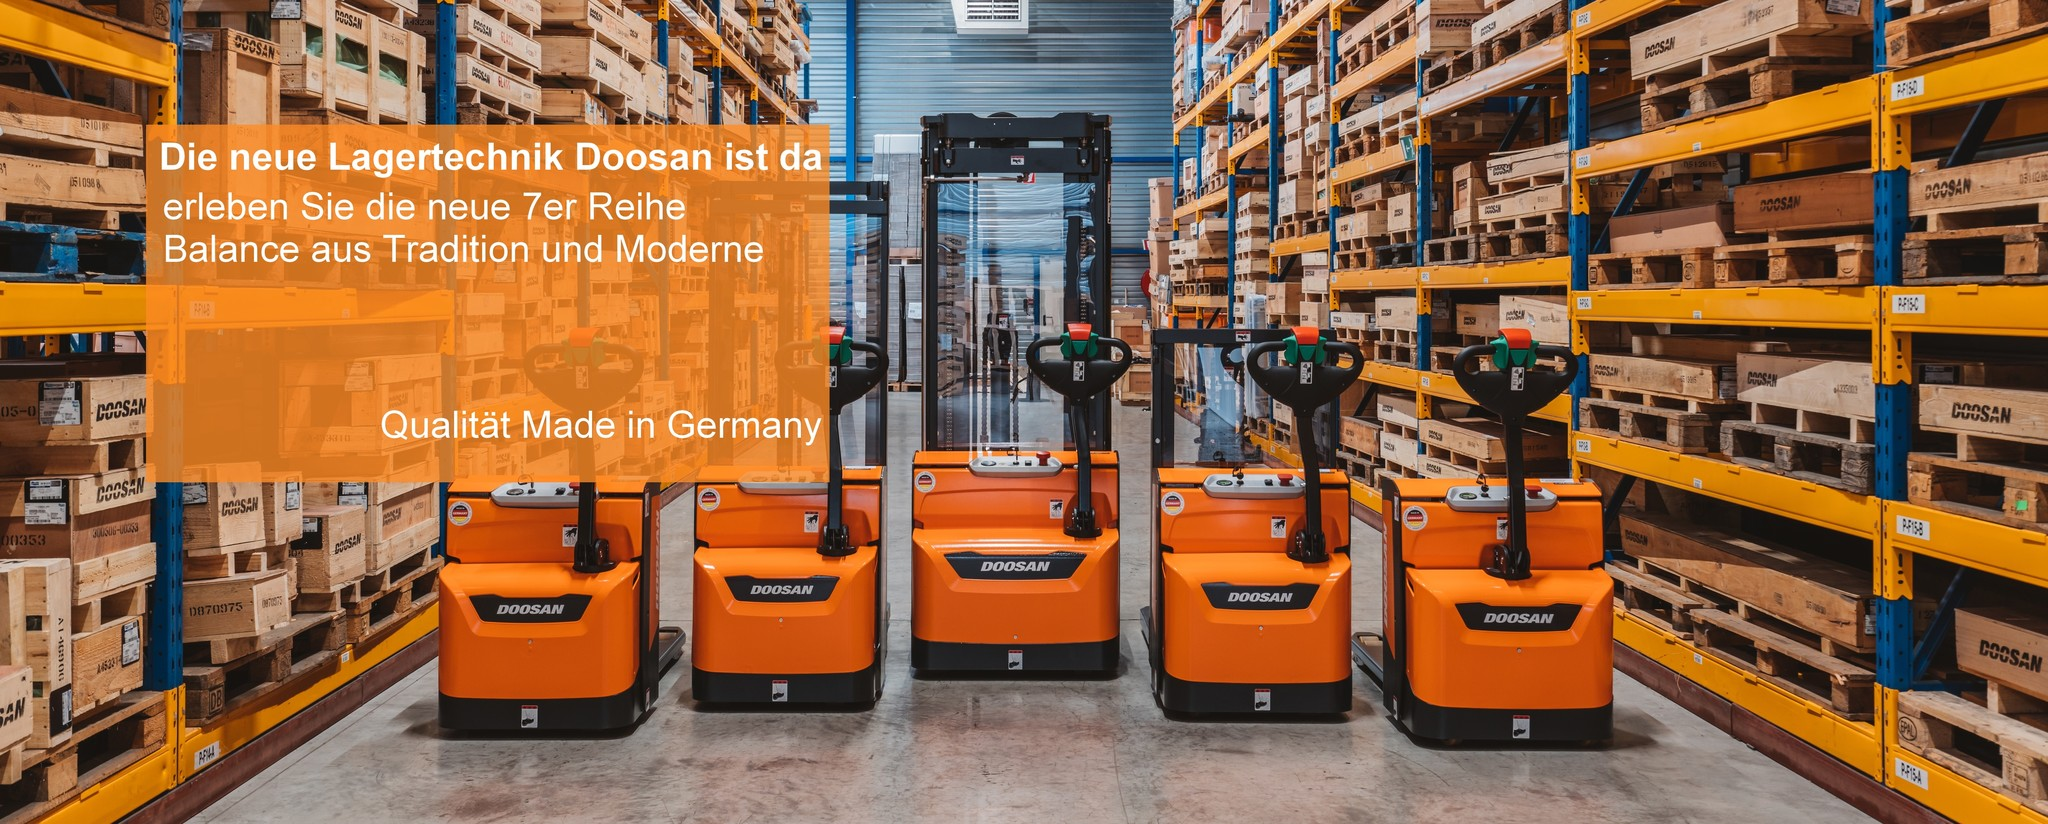 https://www.cms-bitforbit.com/newsimages/files/Doosan_logo_klein160.png